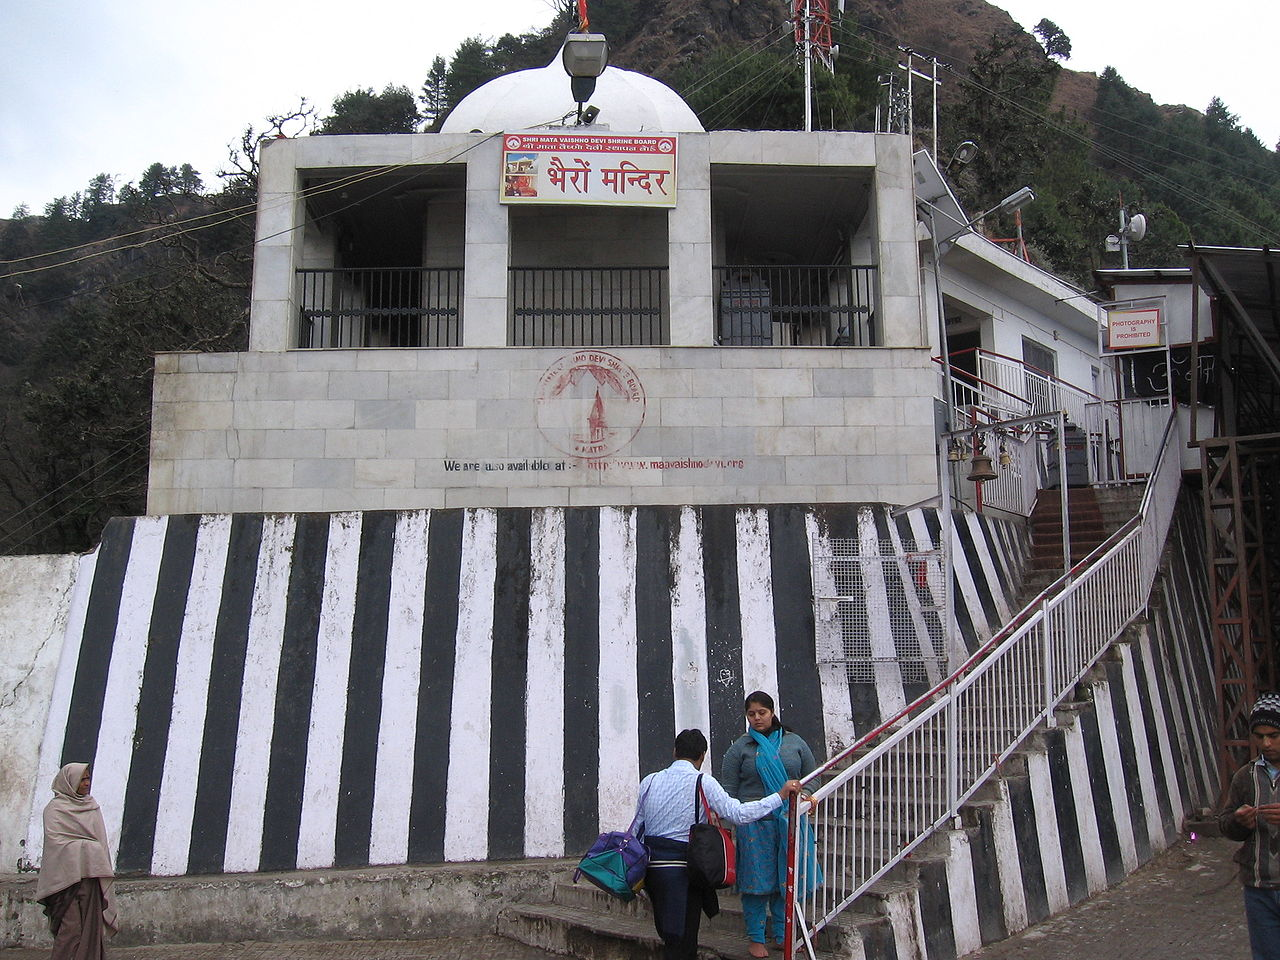 Top Place To See In Vaishno Devi-Bhairavnath Temple Vaishno Devi